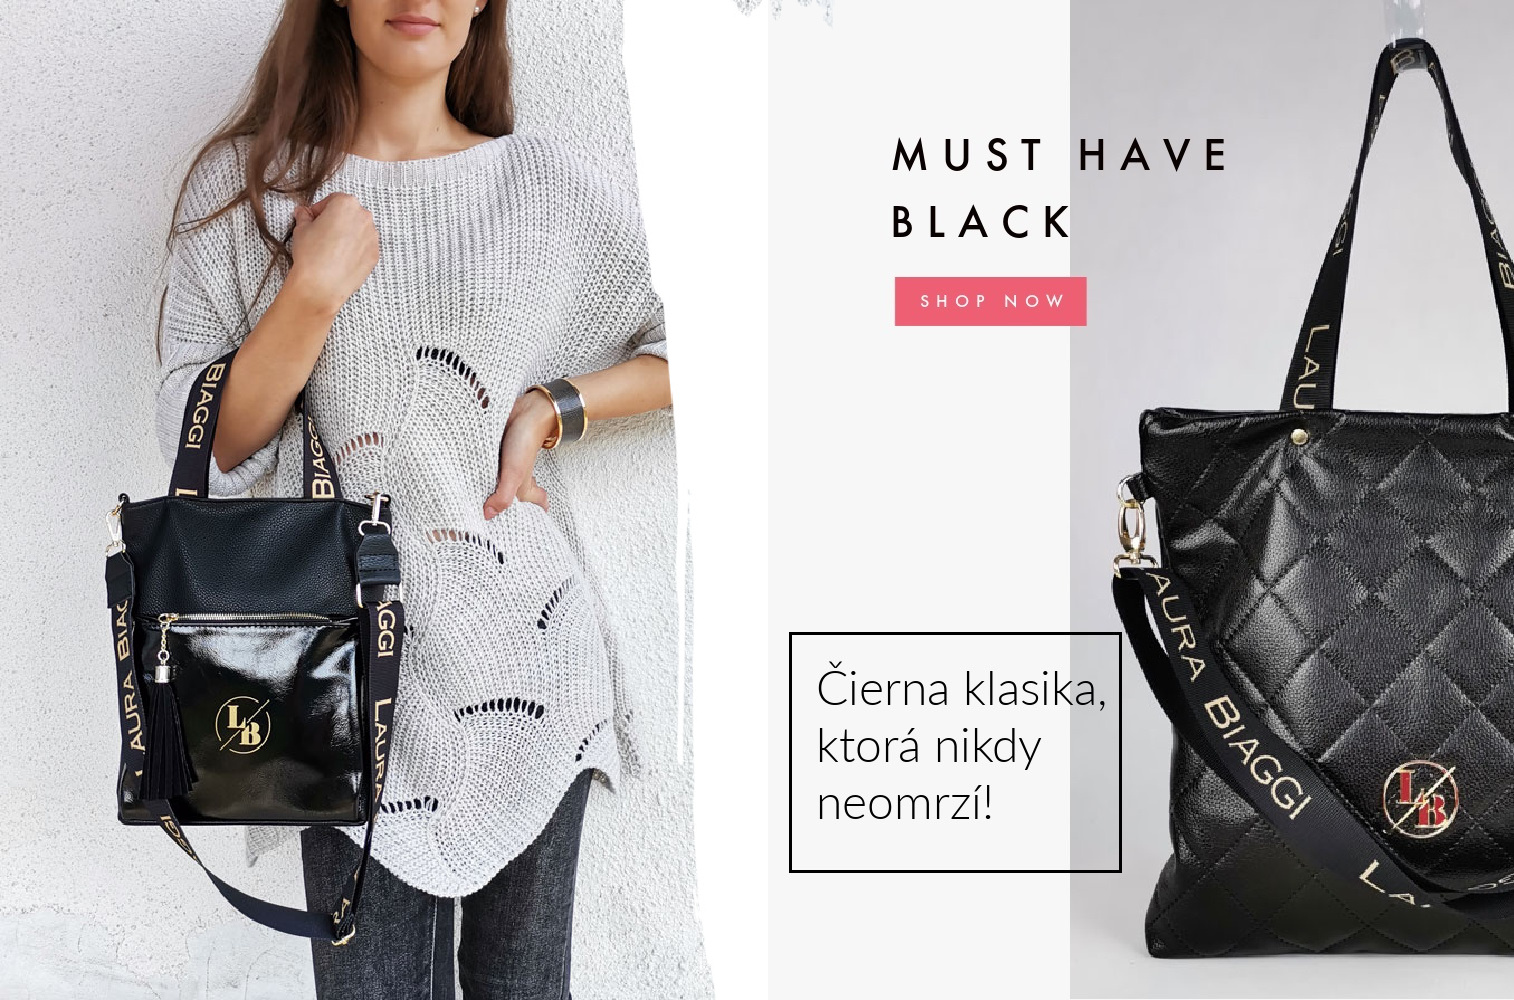 MUST HAVE black!